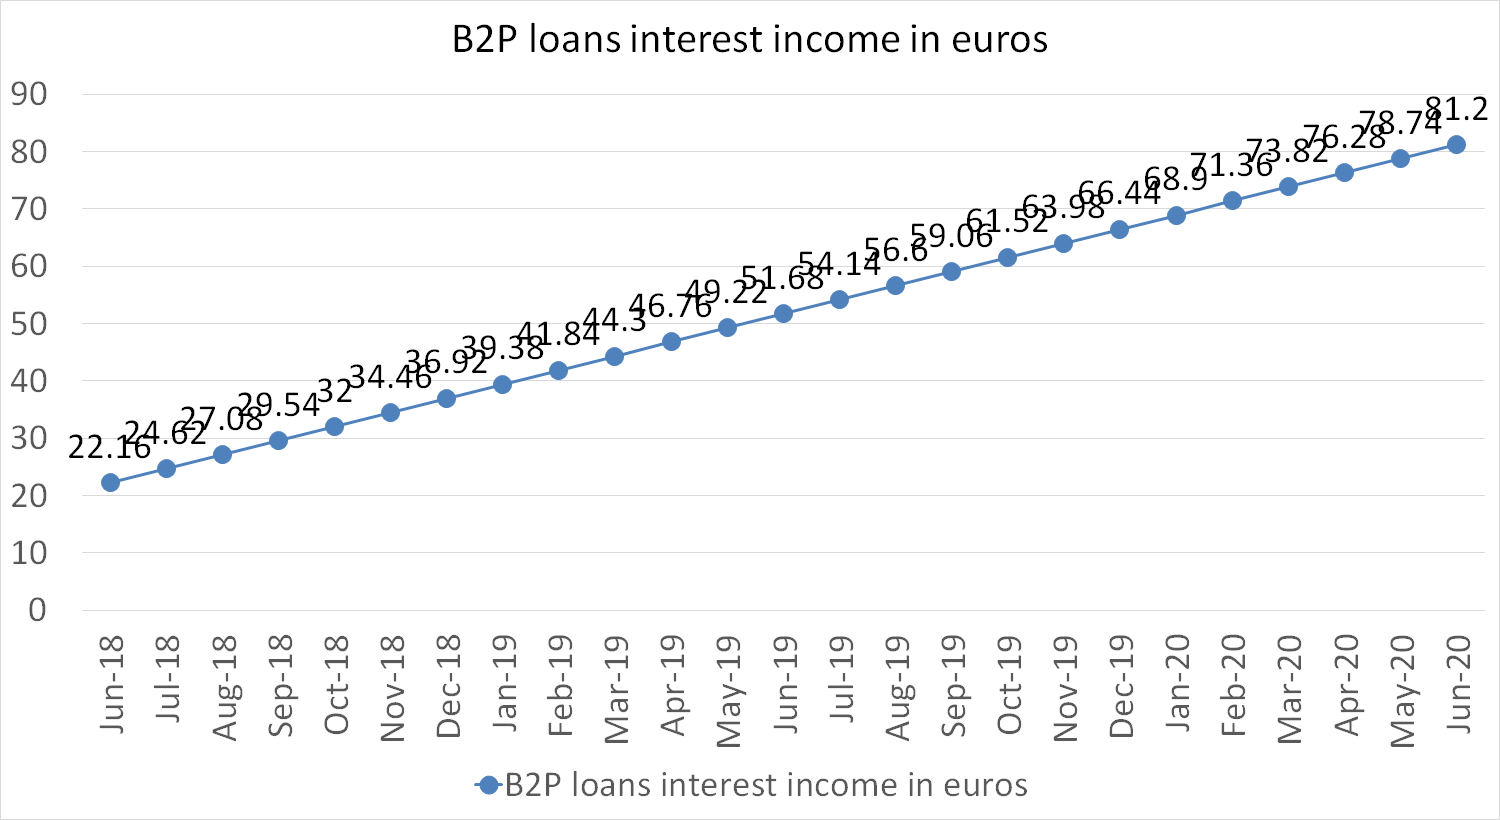 B2P loans interests income in euros june 2020